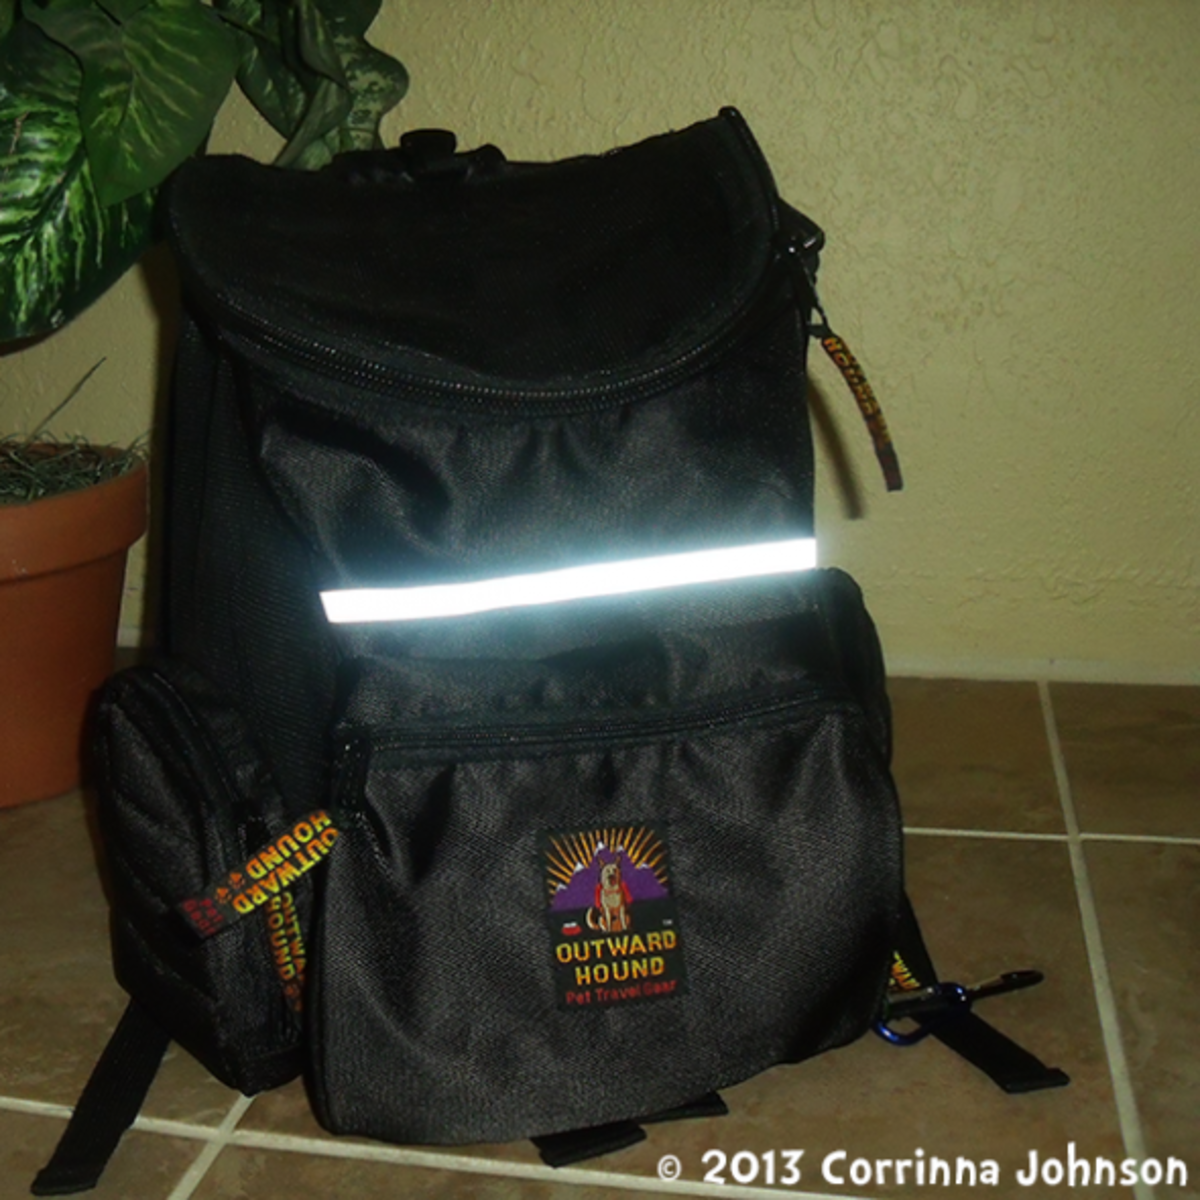 The Bag Has A Reflective Strip Across The Front